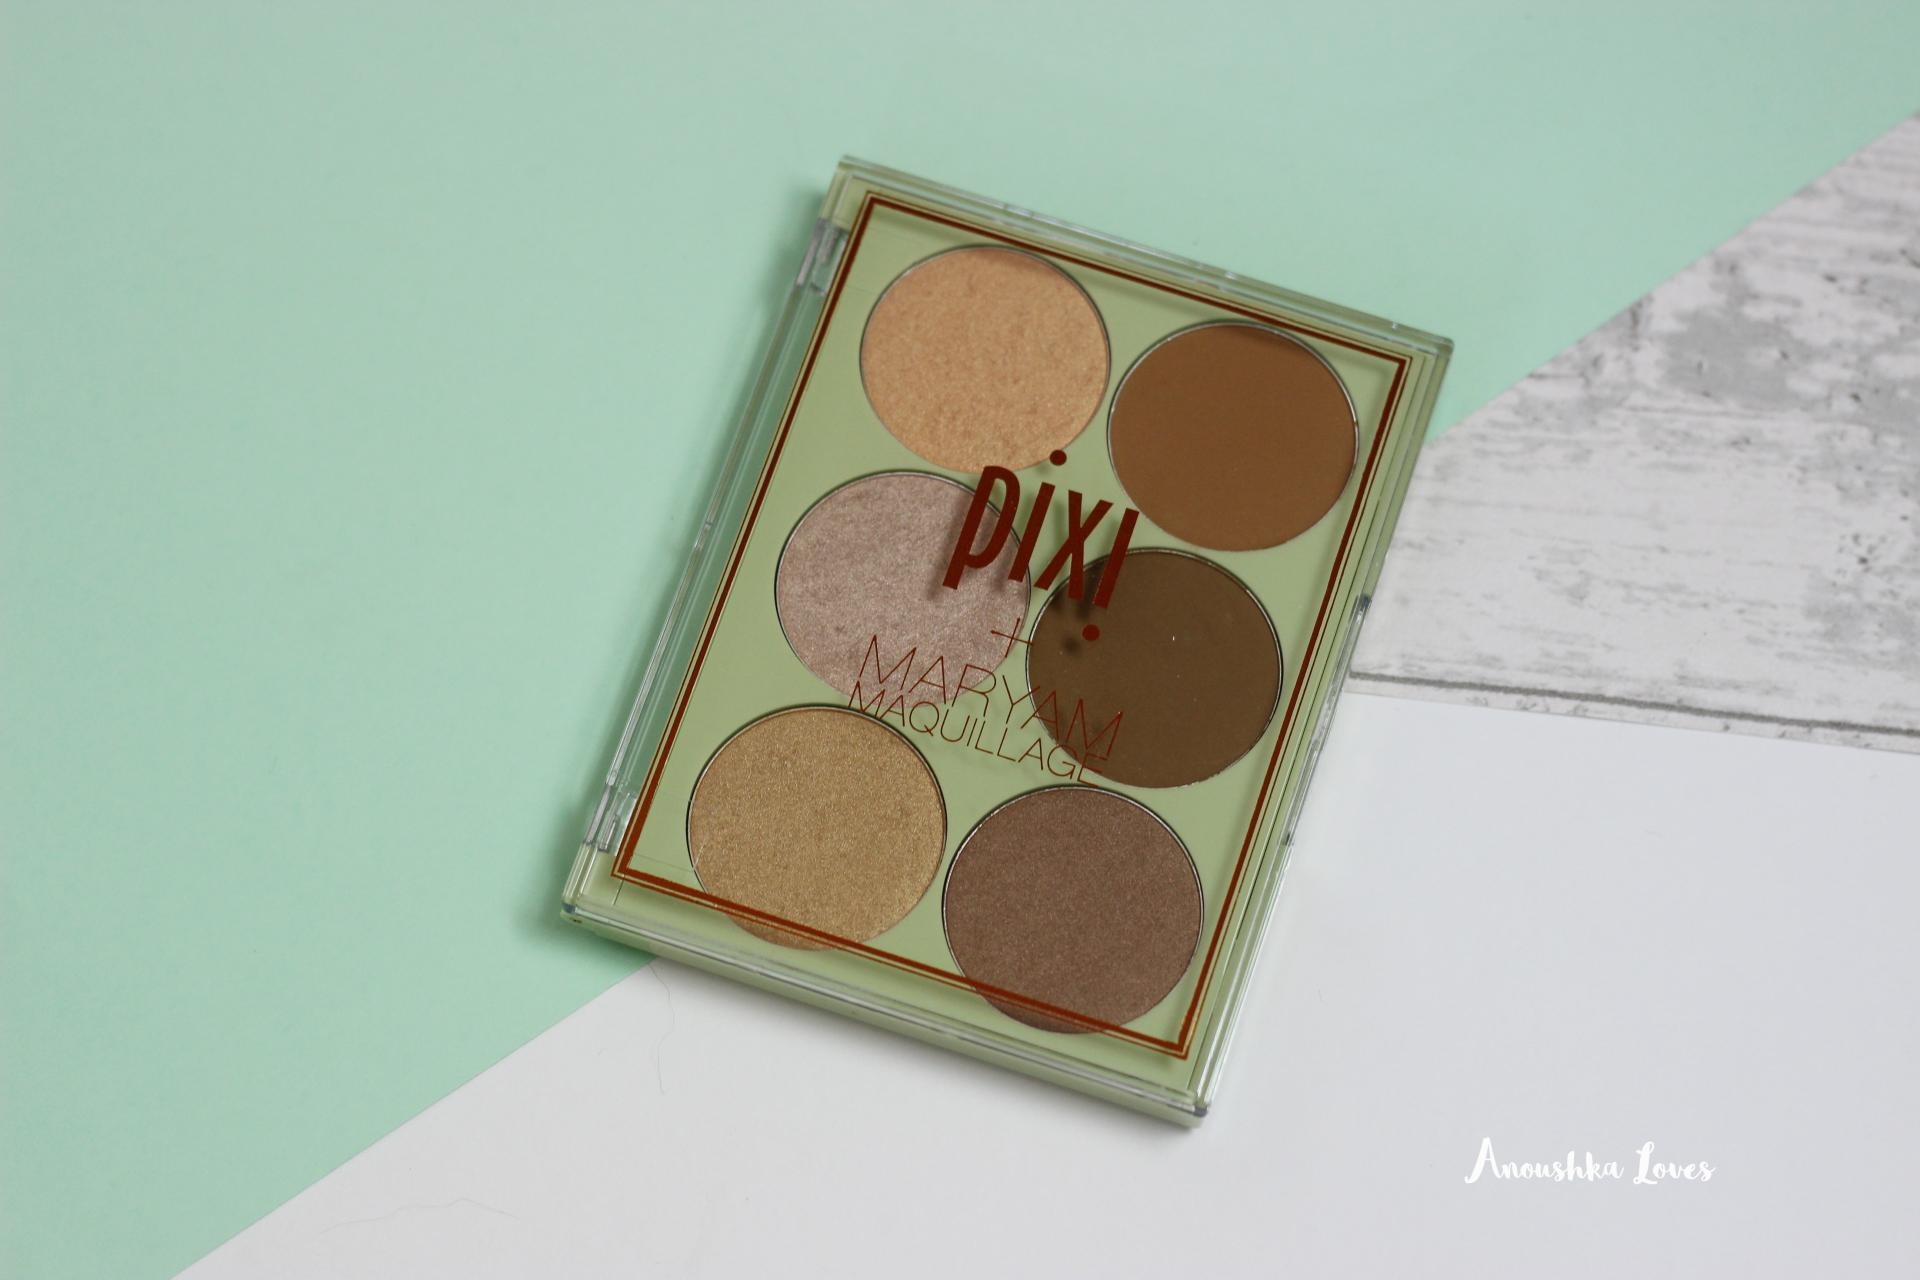 The Pixi Beauty and the PixiPretties Collection